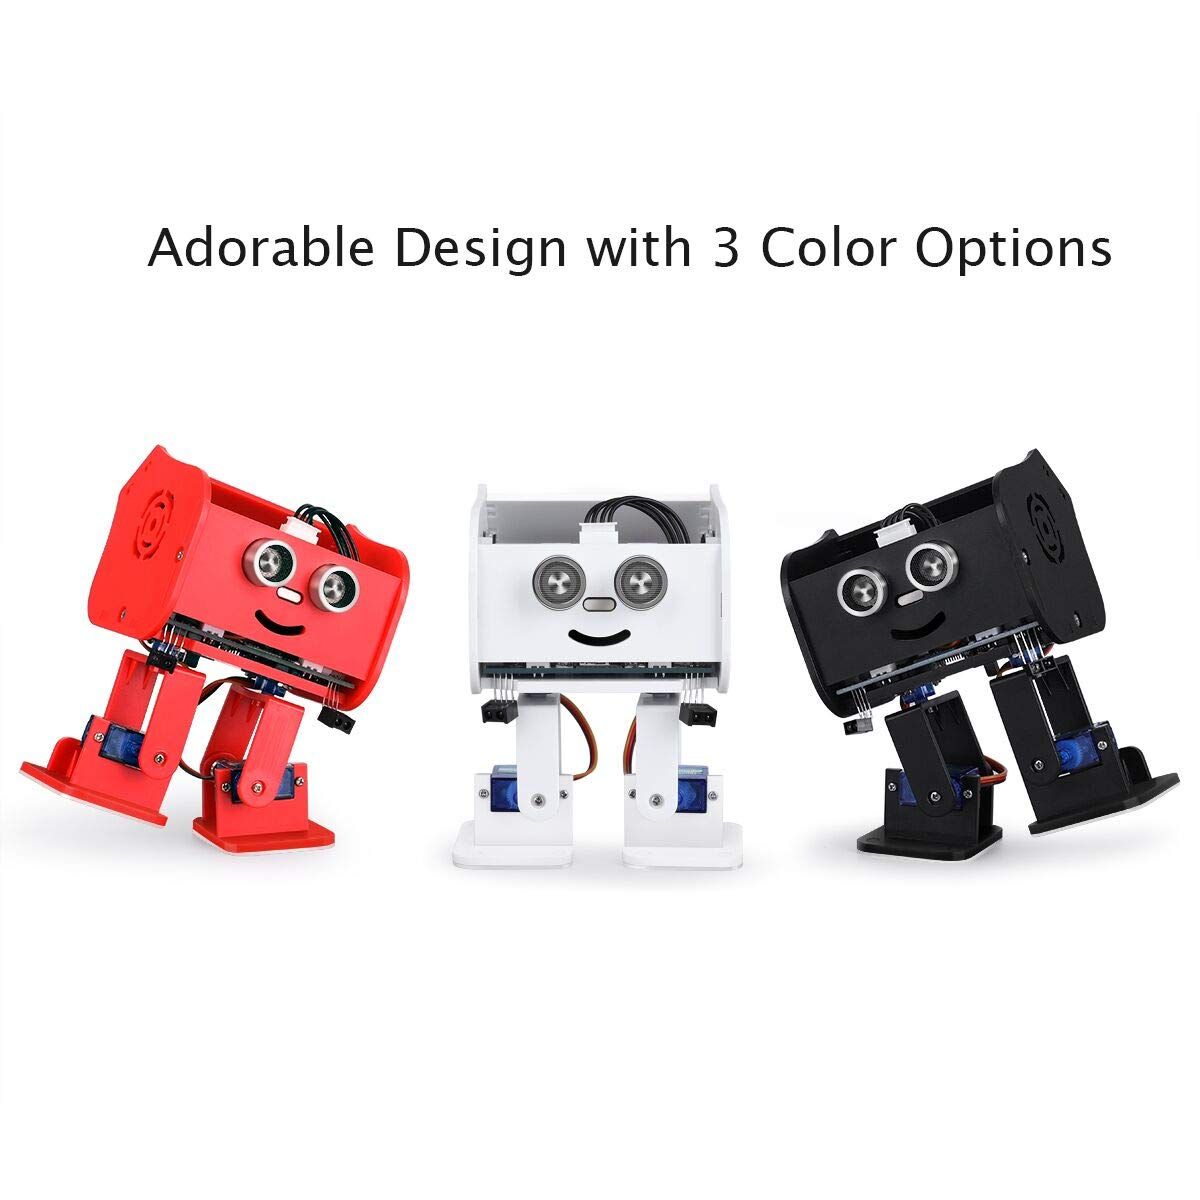 ELEGOO Penguin Bot Biped Robot Kit for Arduino Project with Assembling Tutorial,STEM Kit for Hobbyists, STEM Toys for Kids and Adults, Red Version by ELEGOO (Image #6)